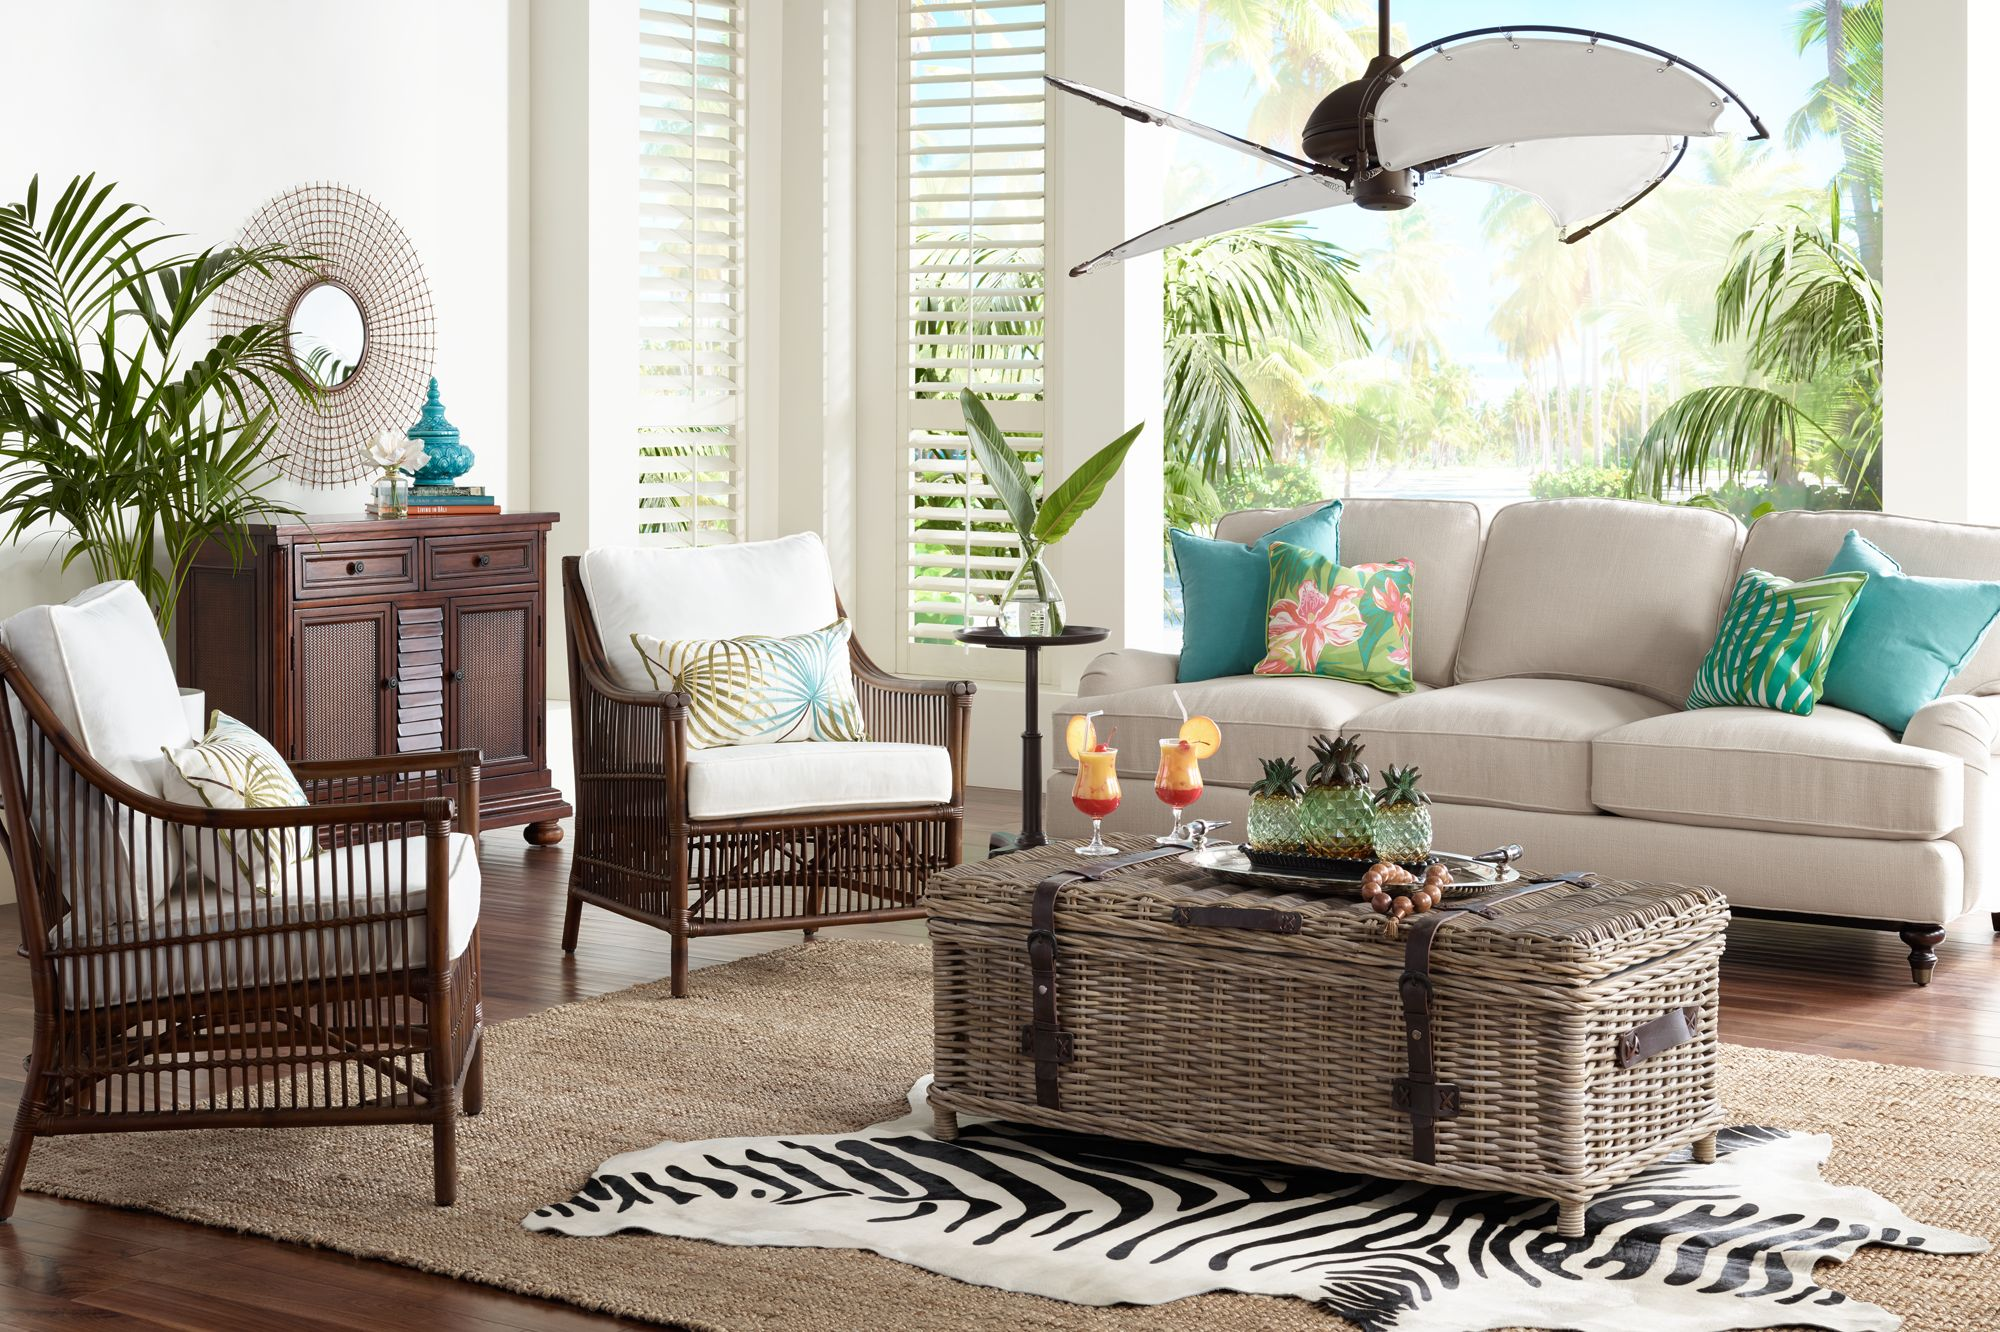 Cool And Breezy Tropical Style With A Rattan Chair And Canvas Blade Fan. Part 72